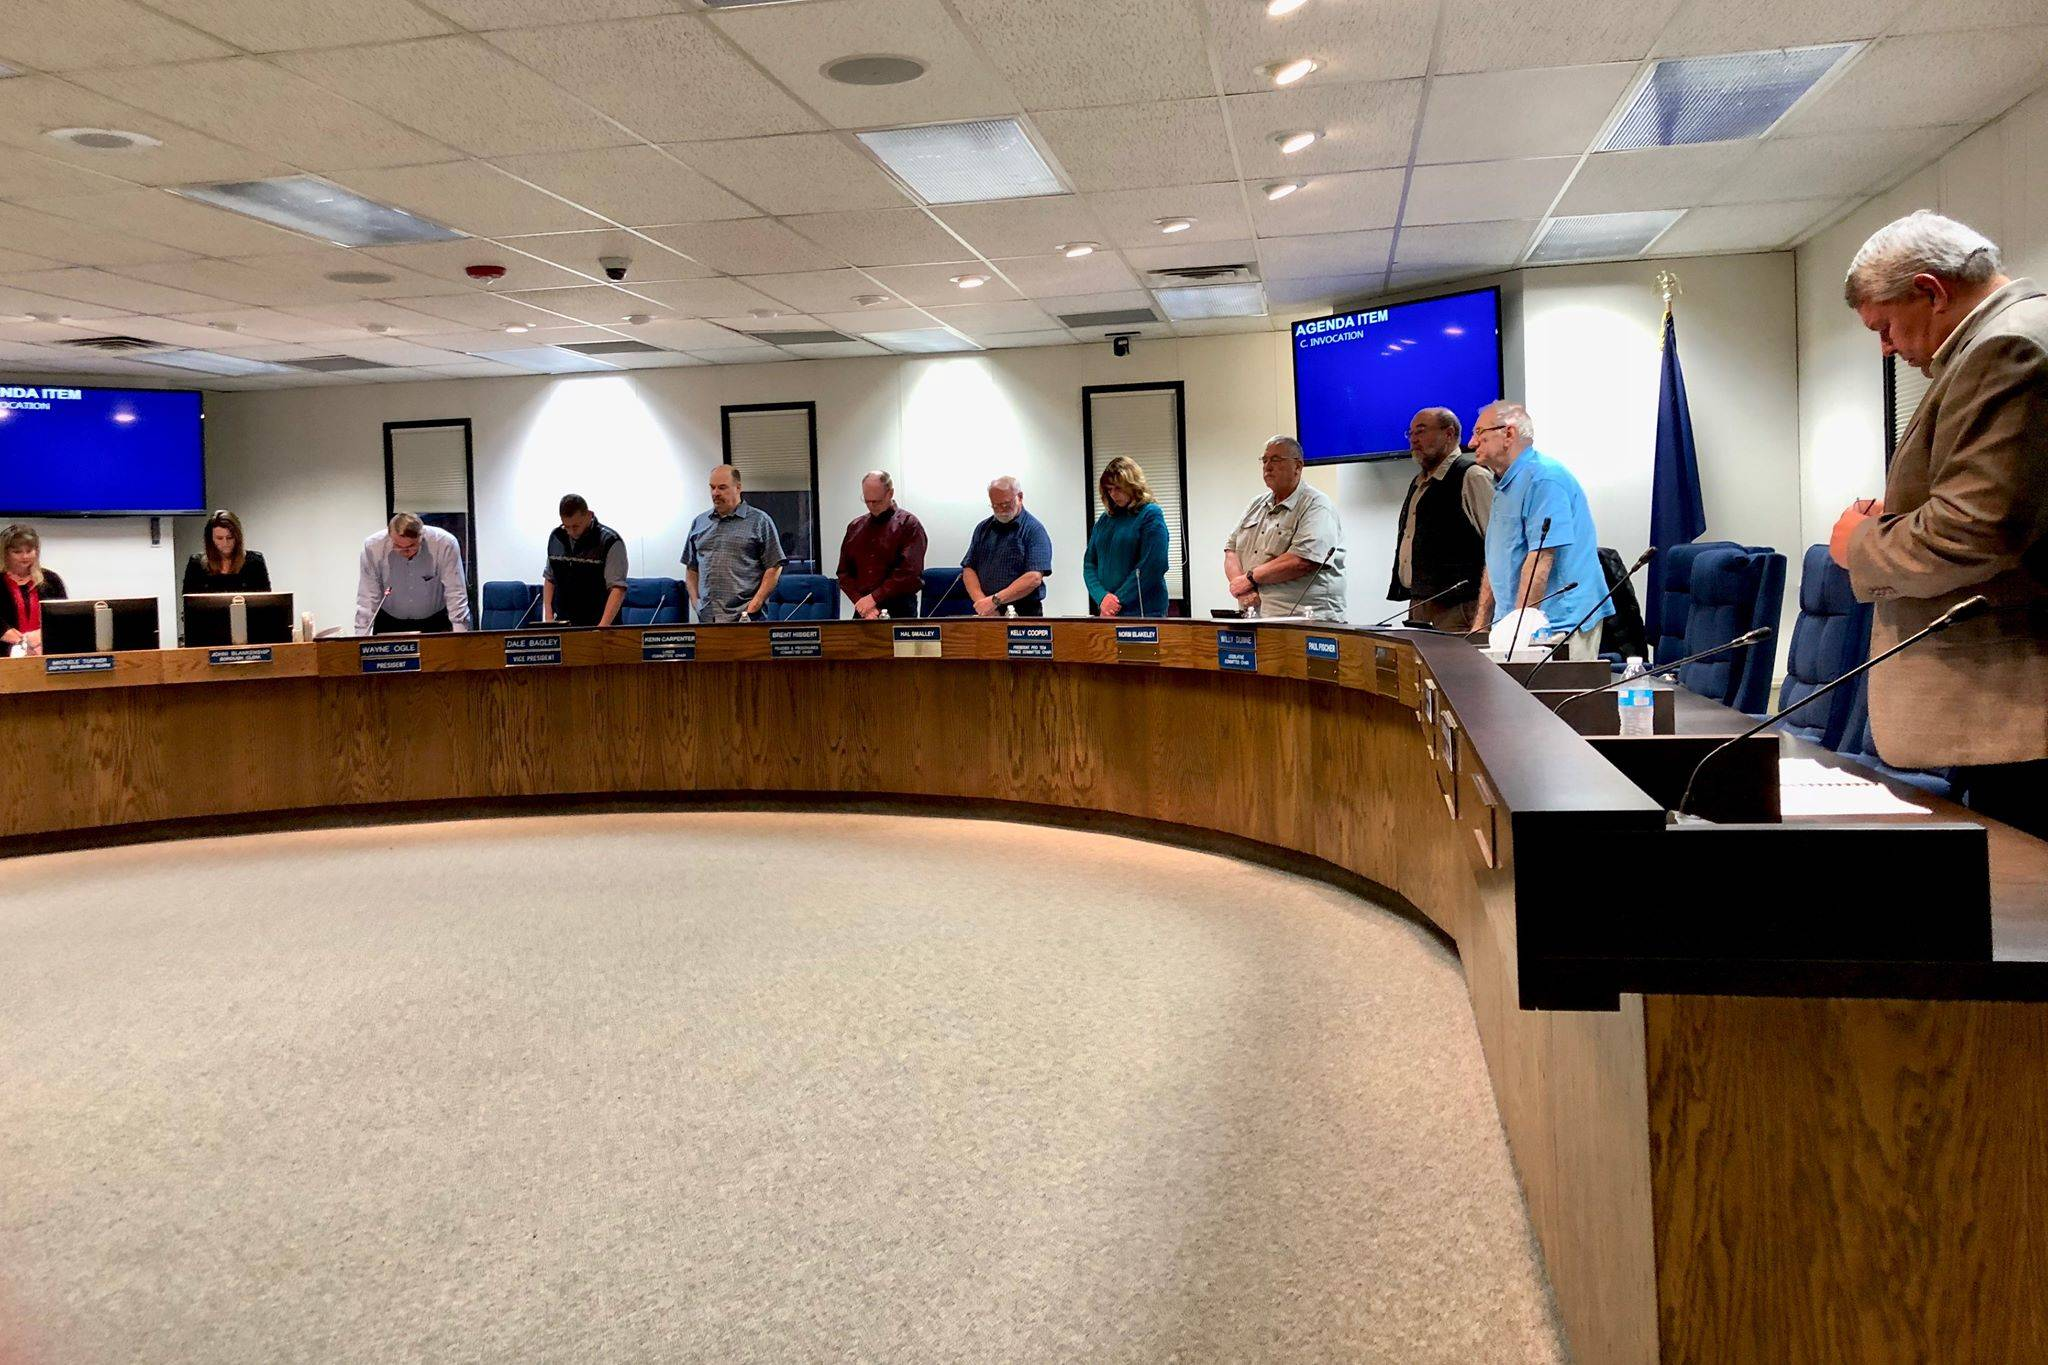 The Kenai Peninsula Borough Assembly stands in silence while Assembly President Wayne Ogle offers an invocation before the meeting, Tuesday, Oct. 23, 2018, in Soldotna, AK. (Photo by Victoria Petersen/Peninsula Clarion)